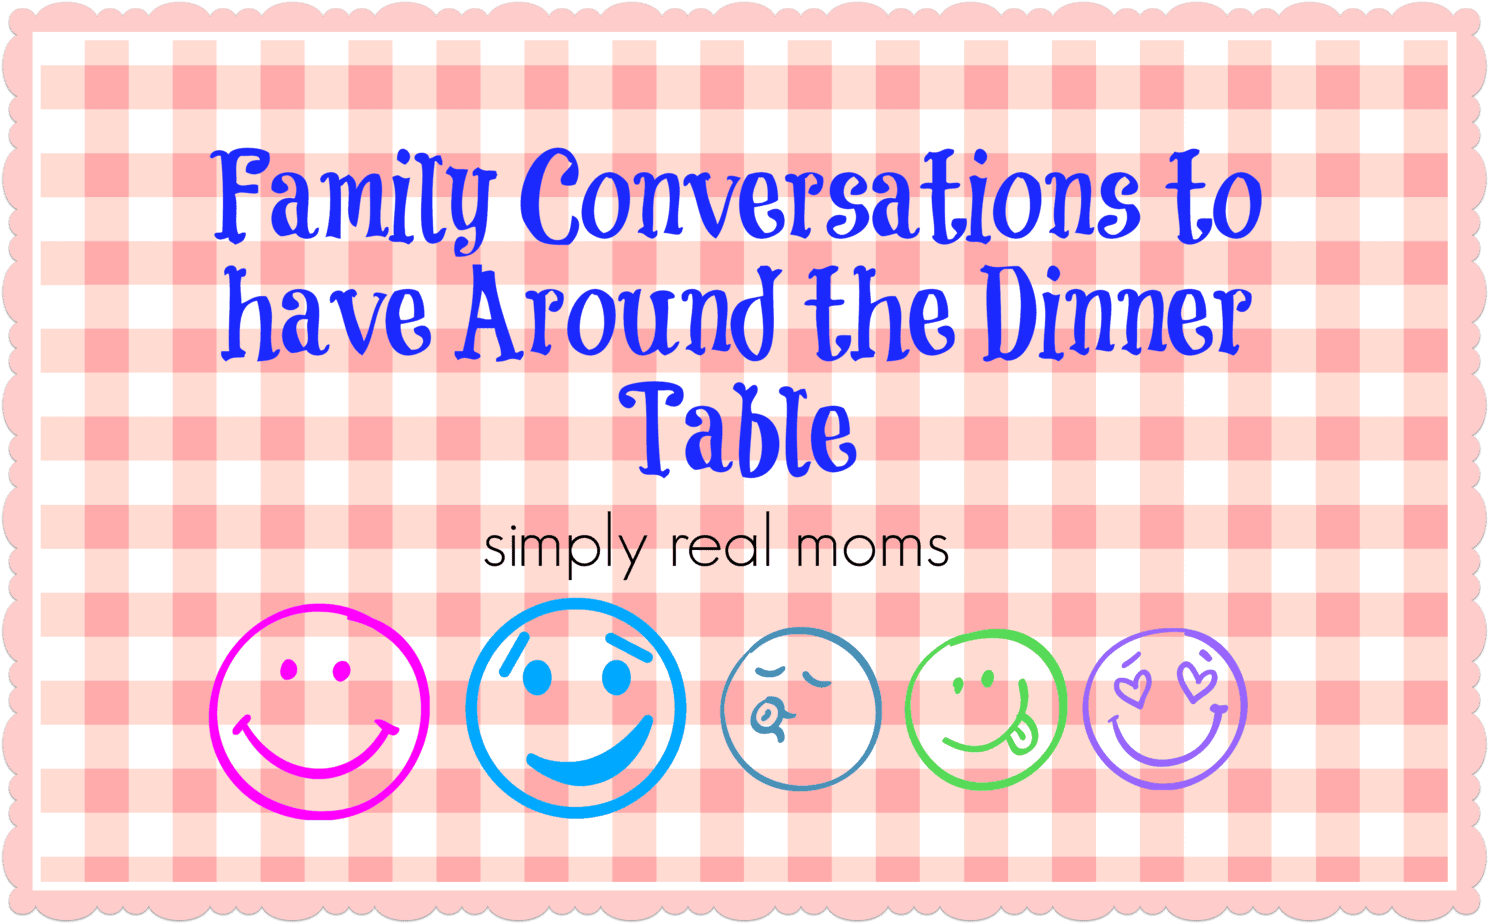 25 Family Conversation Starters for Around the Dinner Table